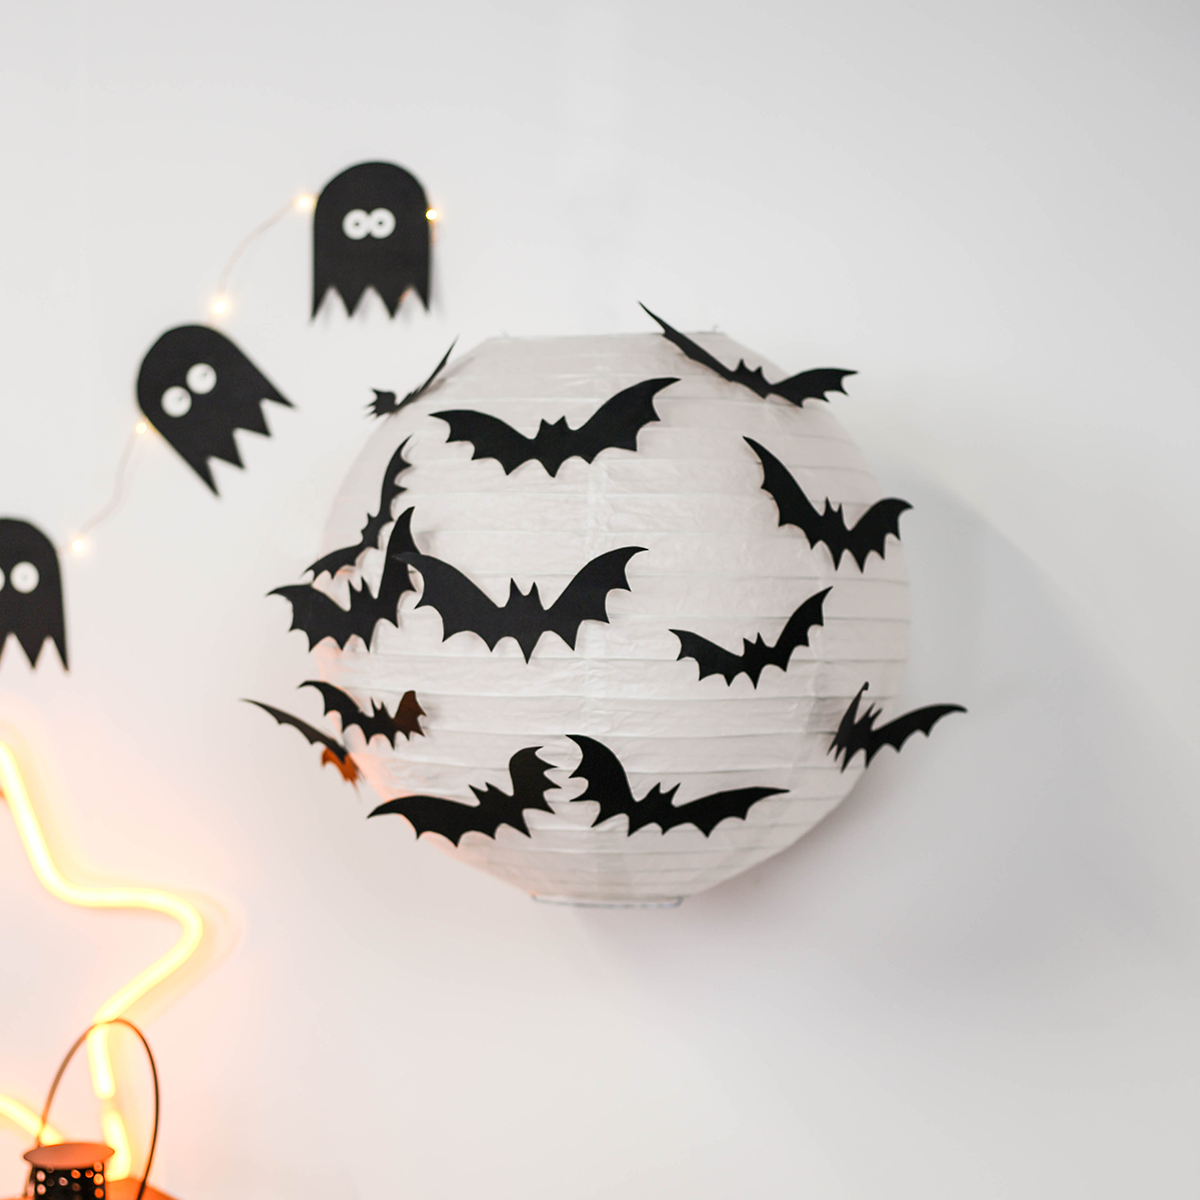 diy halloween nos 3 tutos d co papier et lumineuse. Black Bedroom Furniture Sets. Home Design Ideas